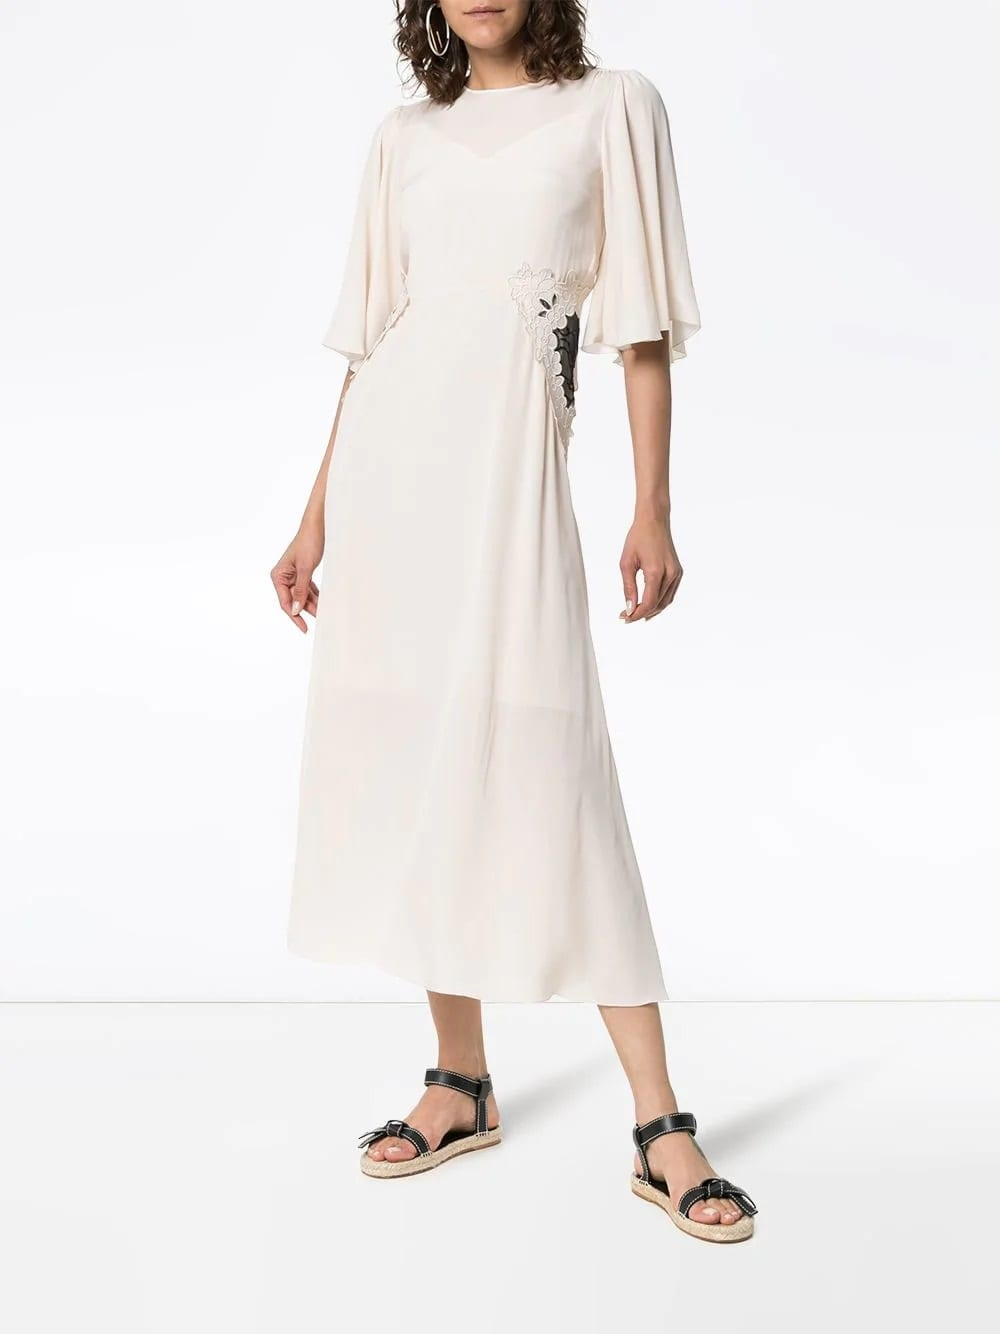 984324984a SEE BY CHLOÉ Lace Panel Midi White Dress - We Select Dresses